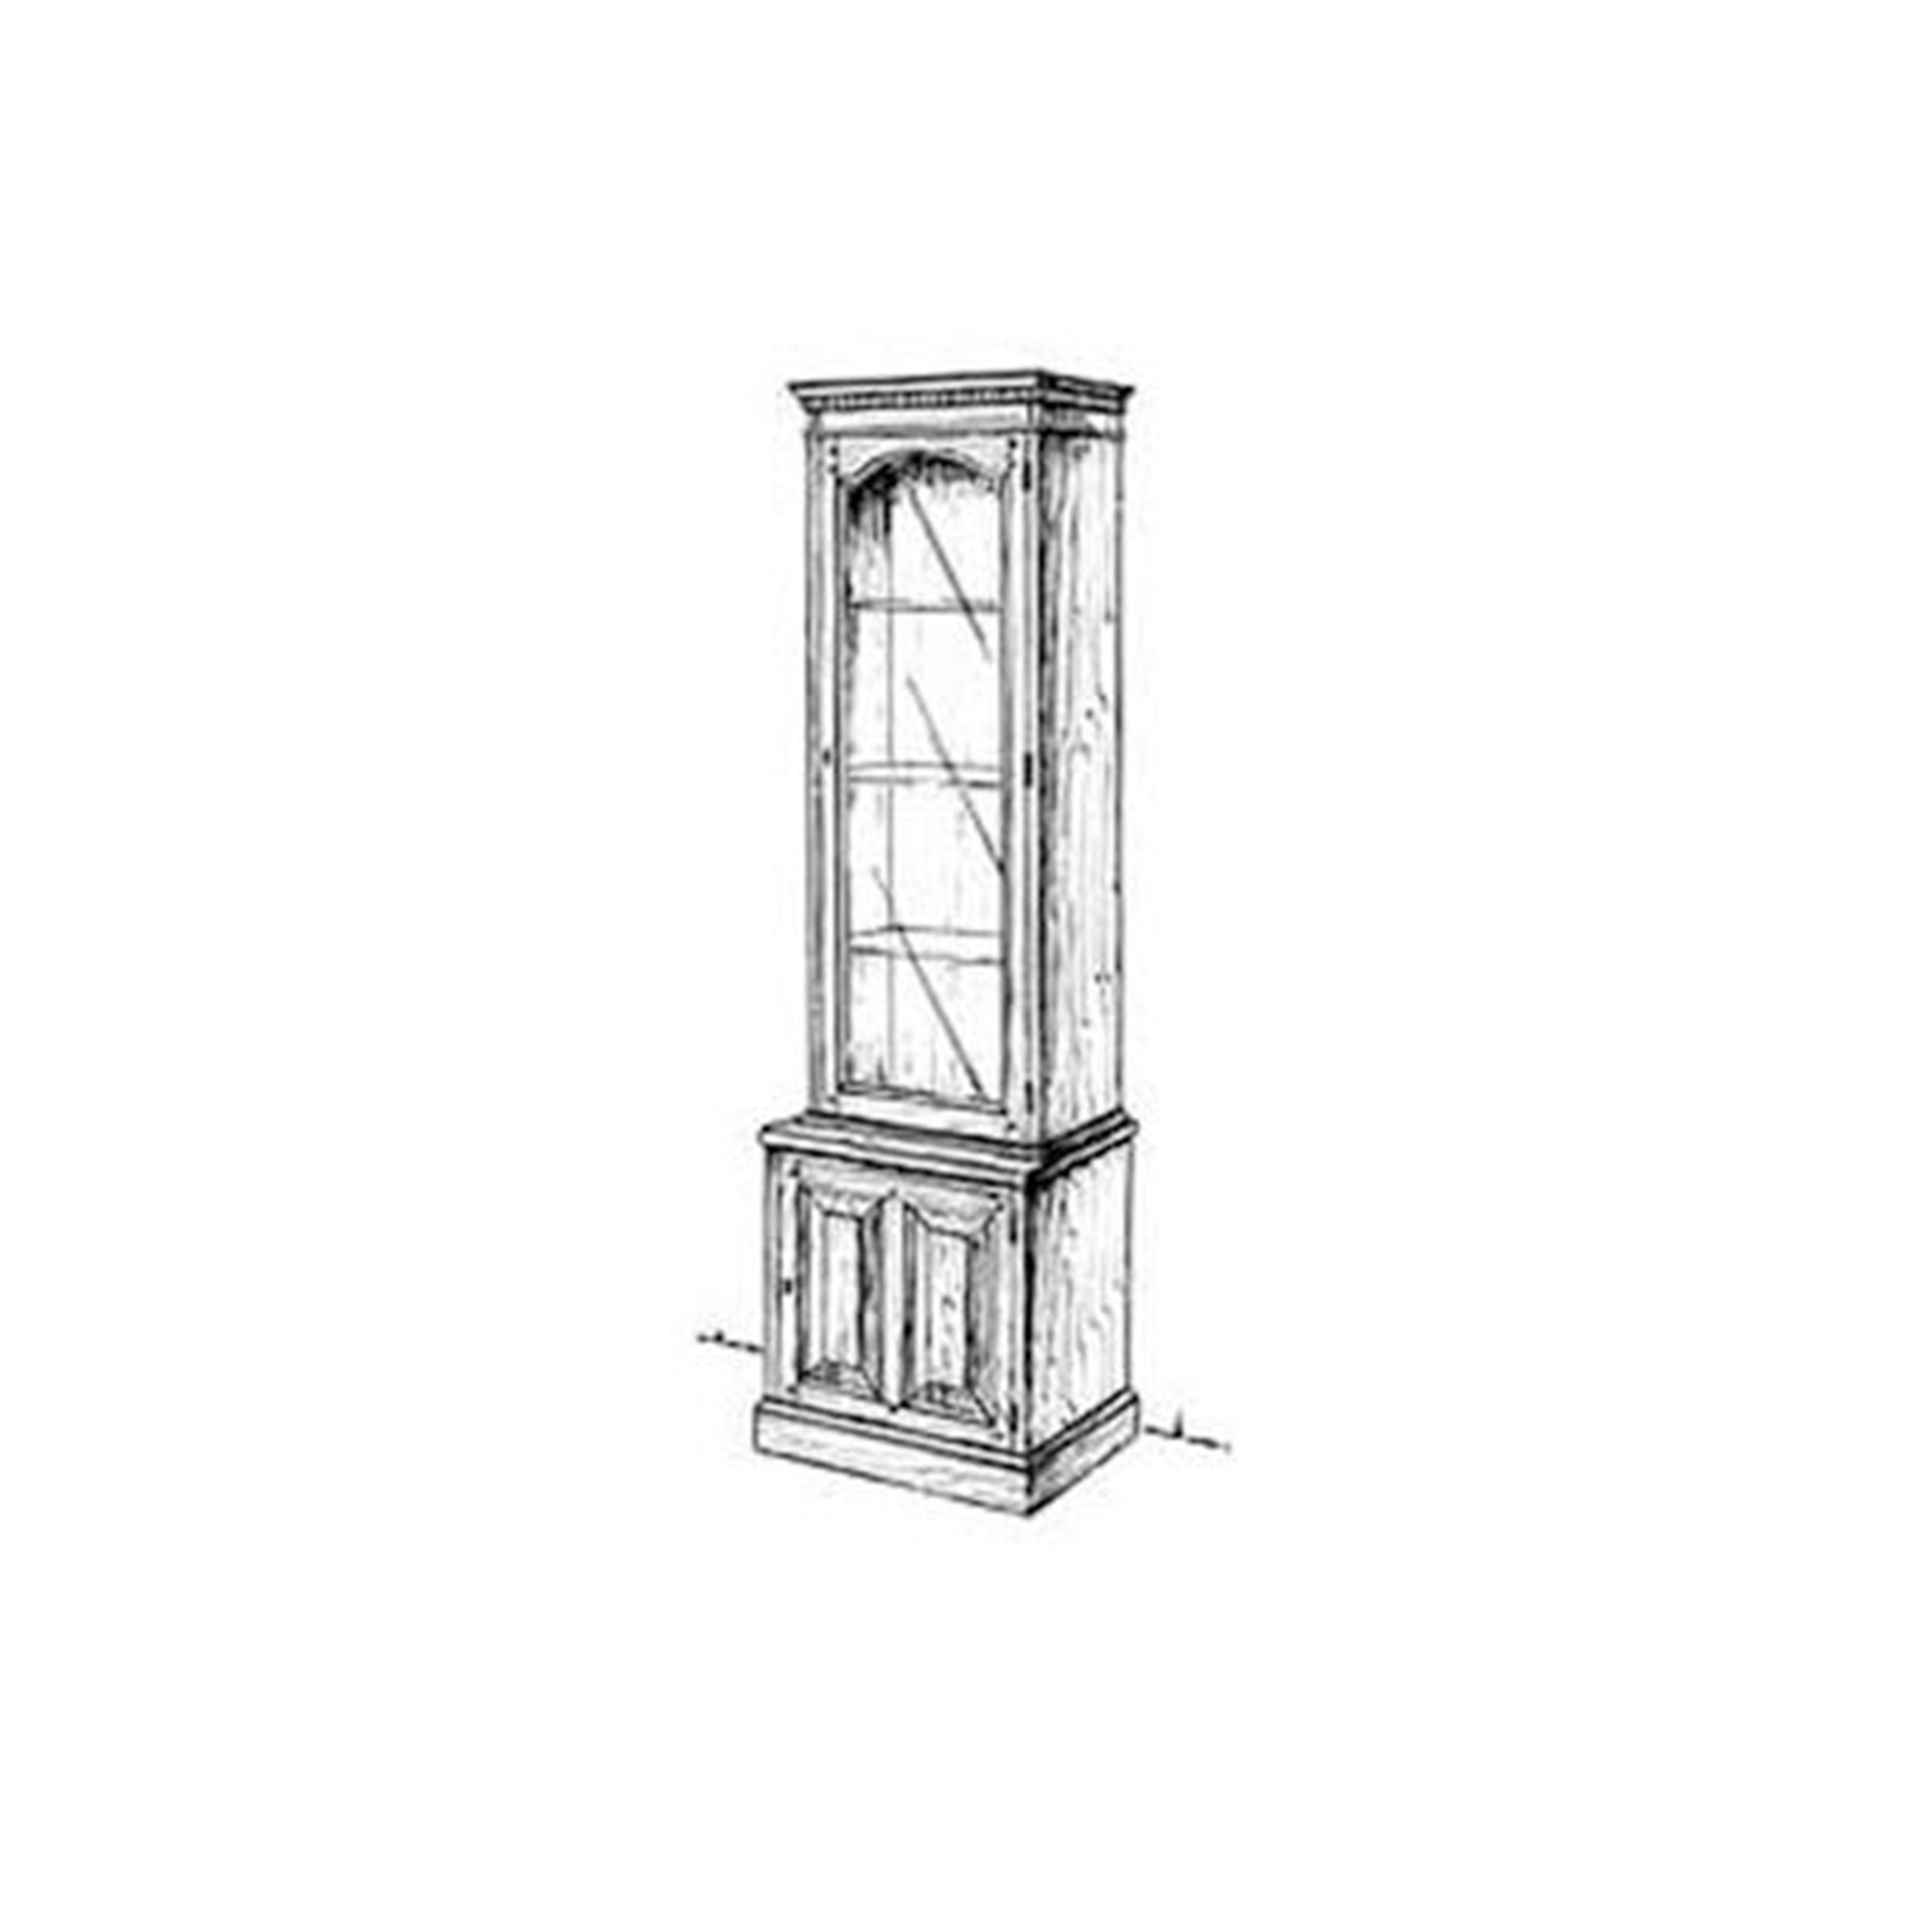 Woodworking Project Paper Plan to Build Slim Curio Cabinet